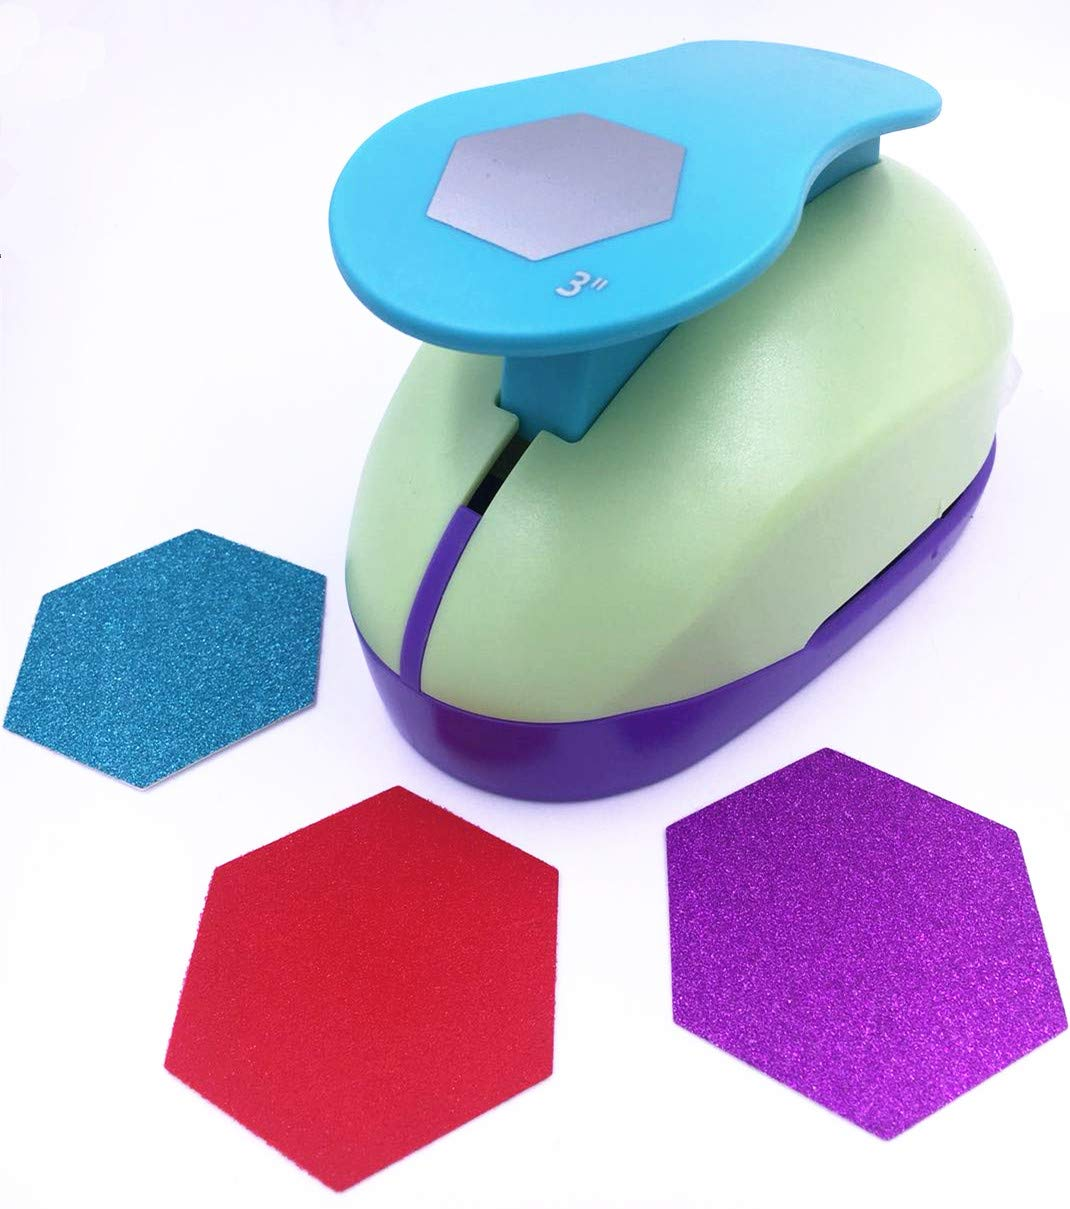 TECH-P Creative Life XXX-Large Shape Size 3-Inch(7.5cm) Multi-Pattern Hand Press Paper Craft Punch,Card Scrapbooking Engraving Kid Cut DIY Handmade Hole Puncher,Paper Craft Punch (Hexagon)